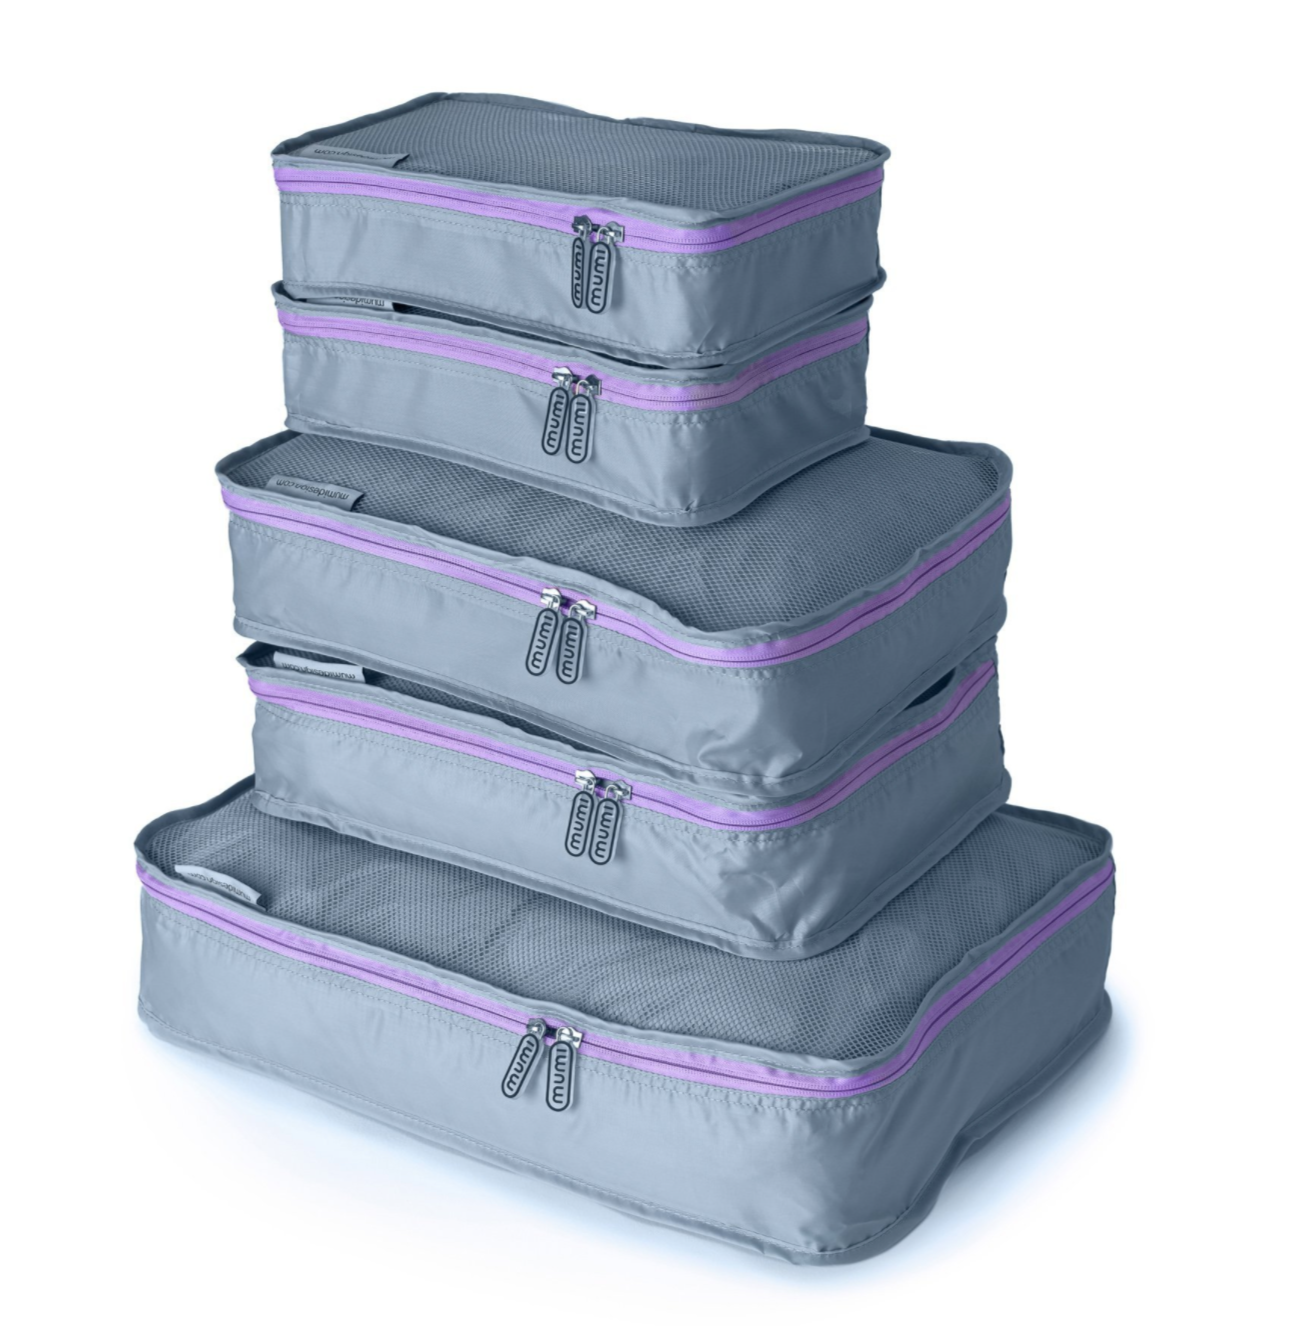 Purple Packing Cube (Set of 5)